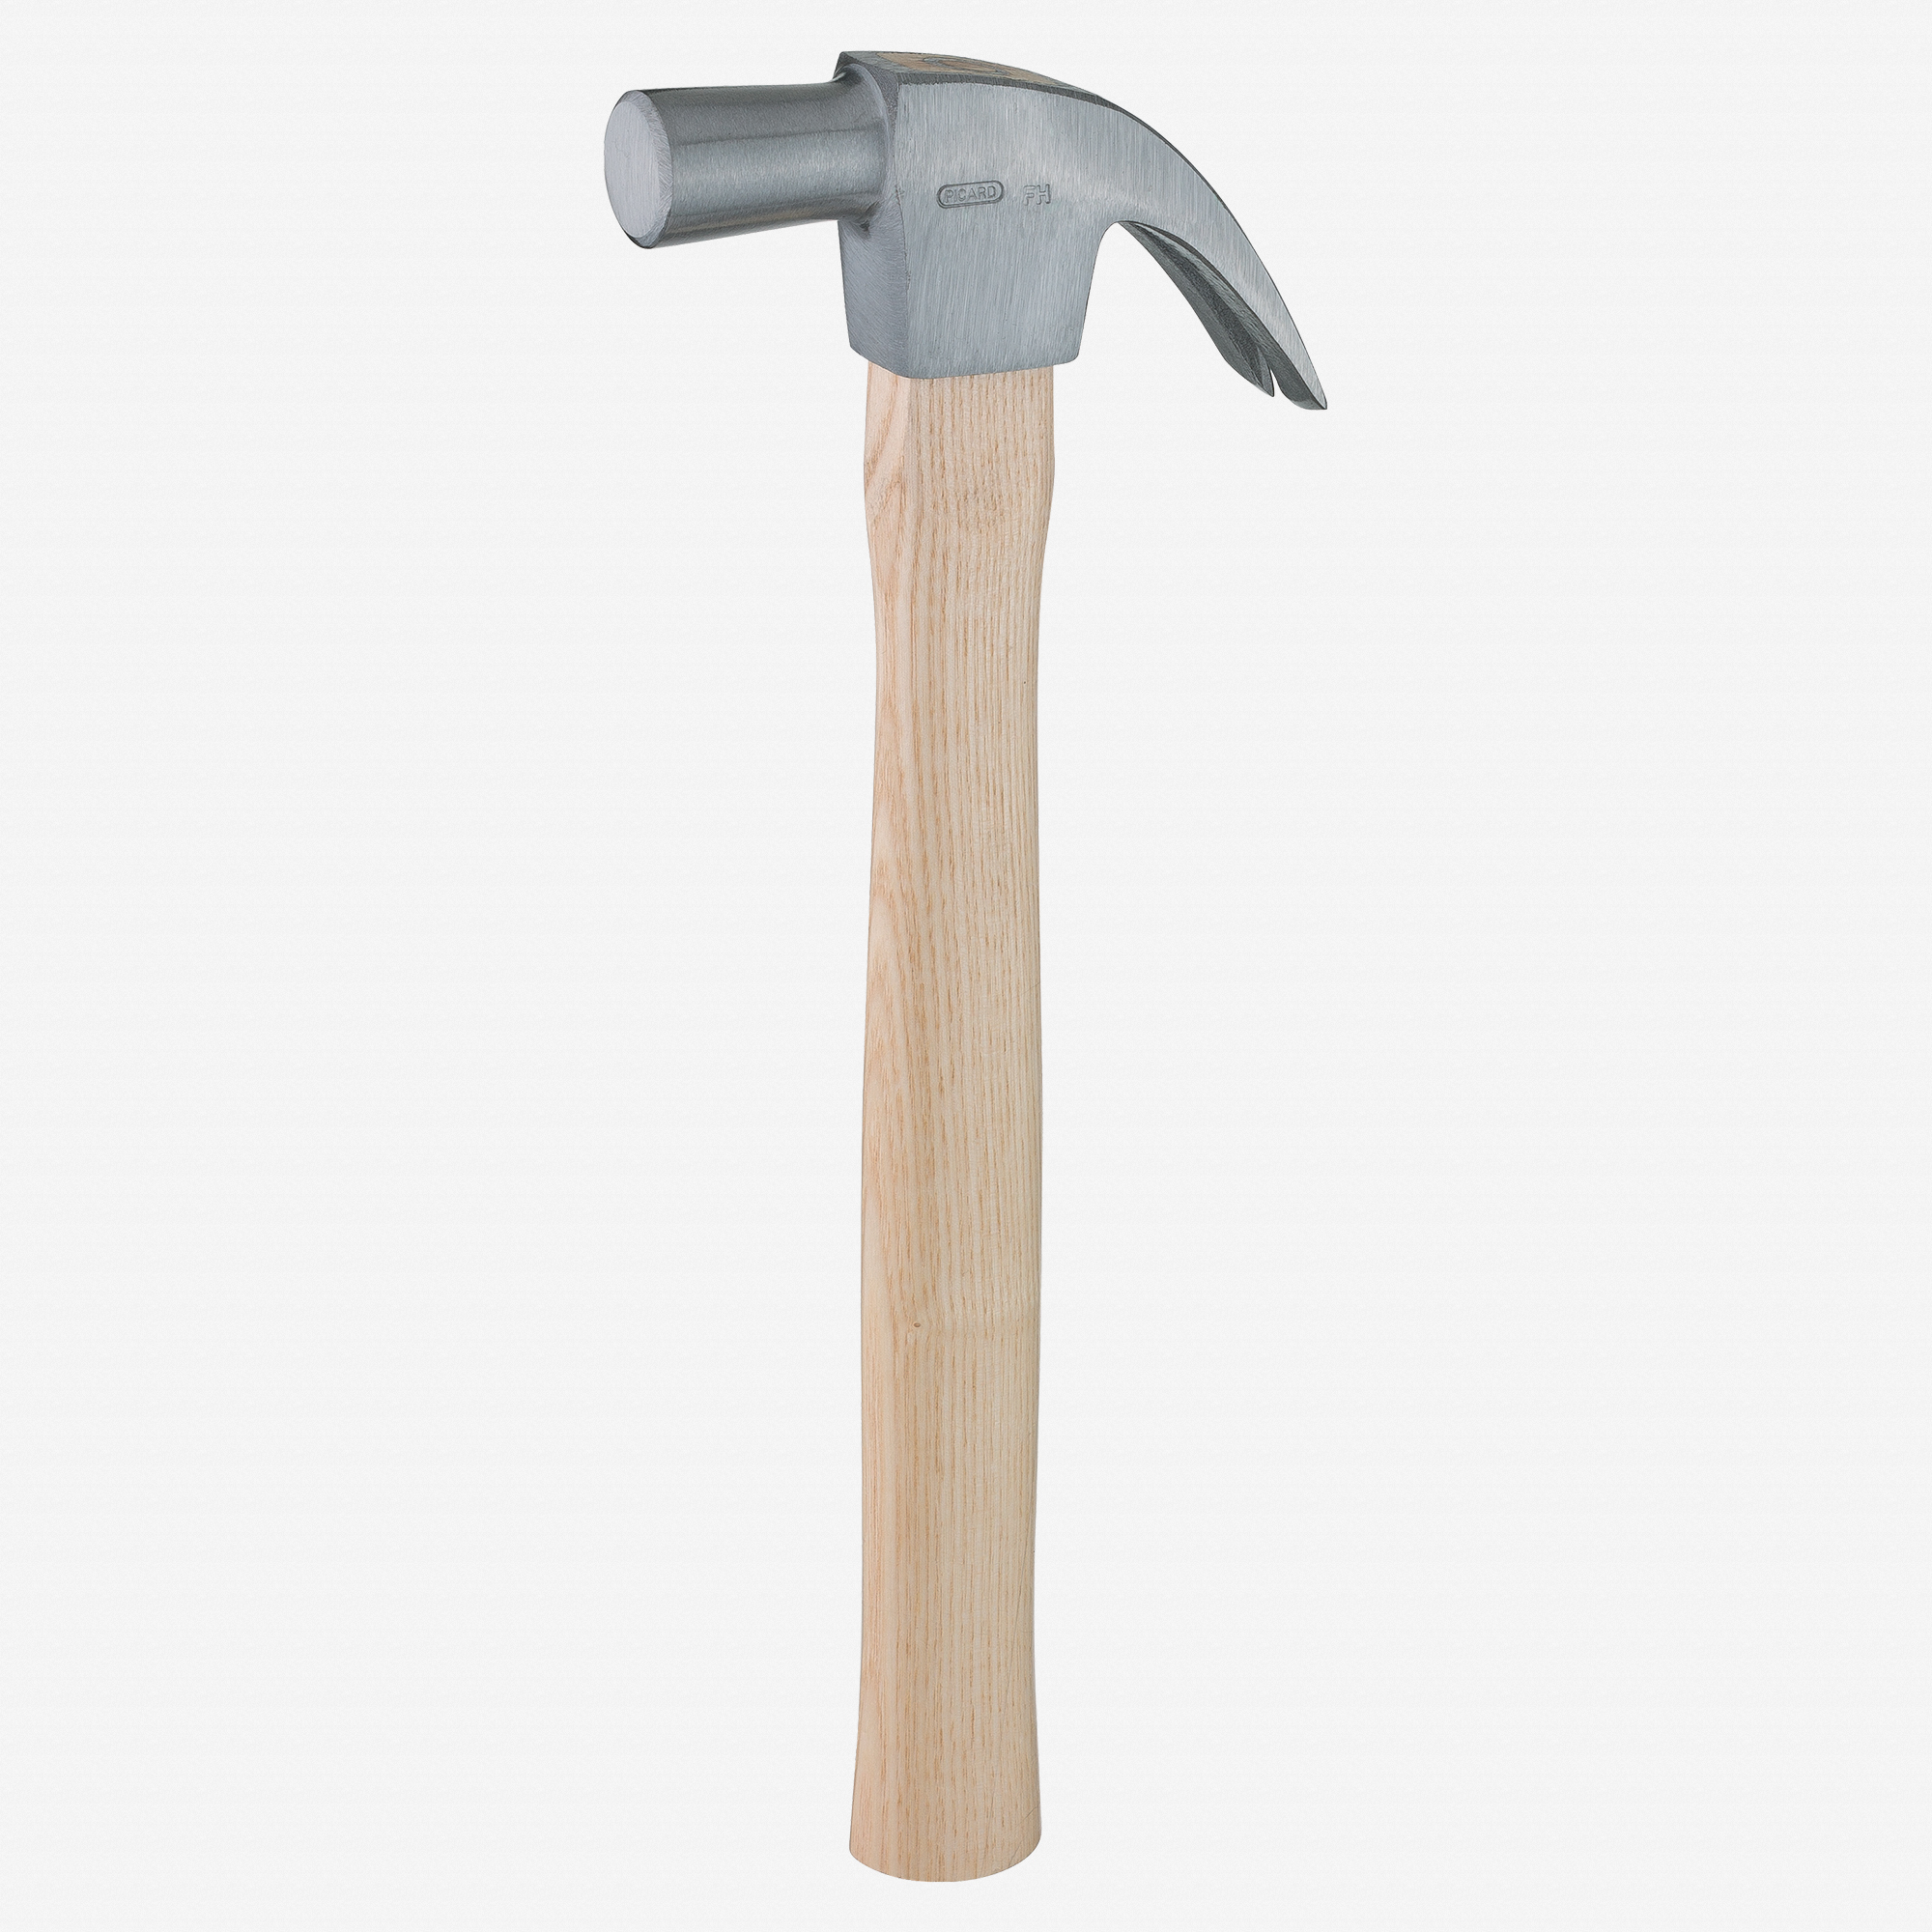 Picard 19oz Curved claw hammer, American pattern,  with nail puller - KC Tool